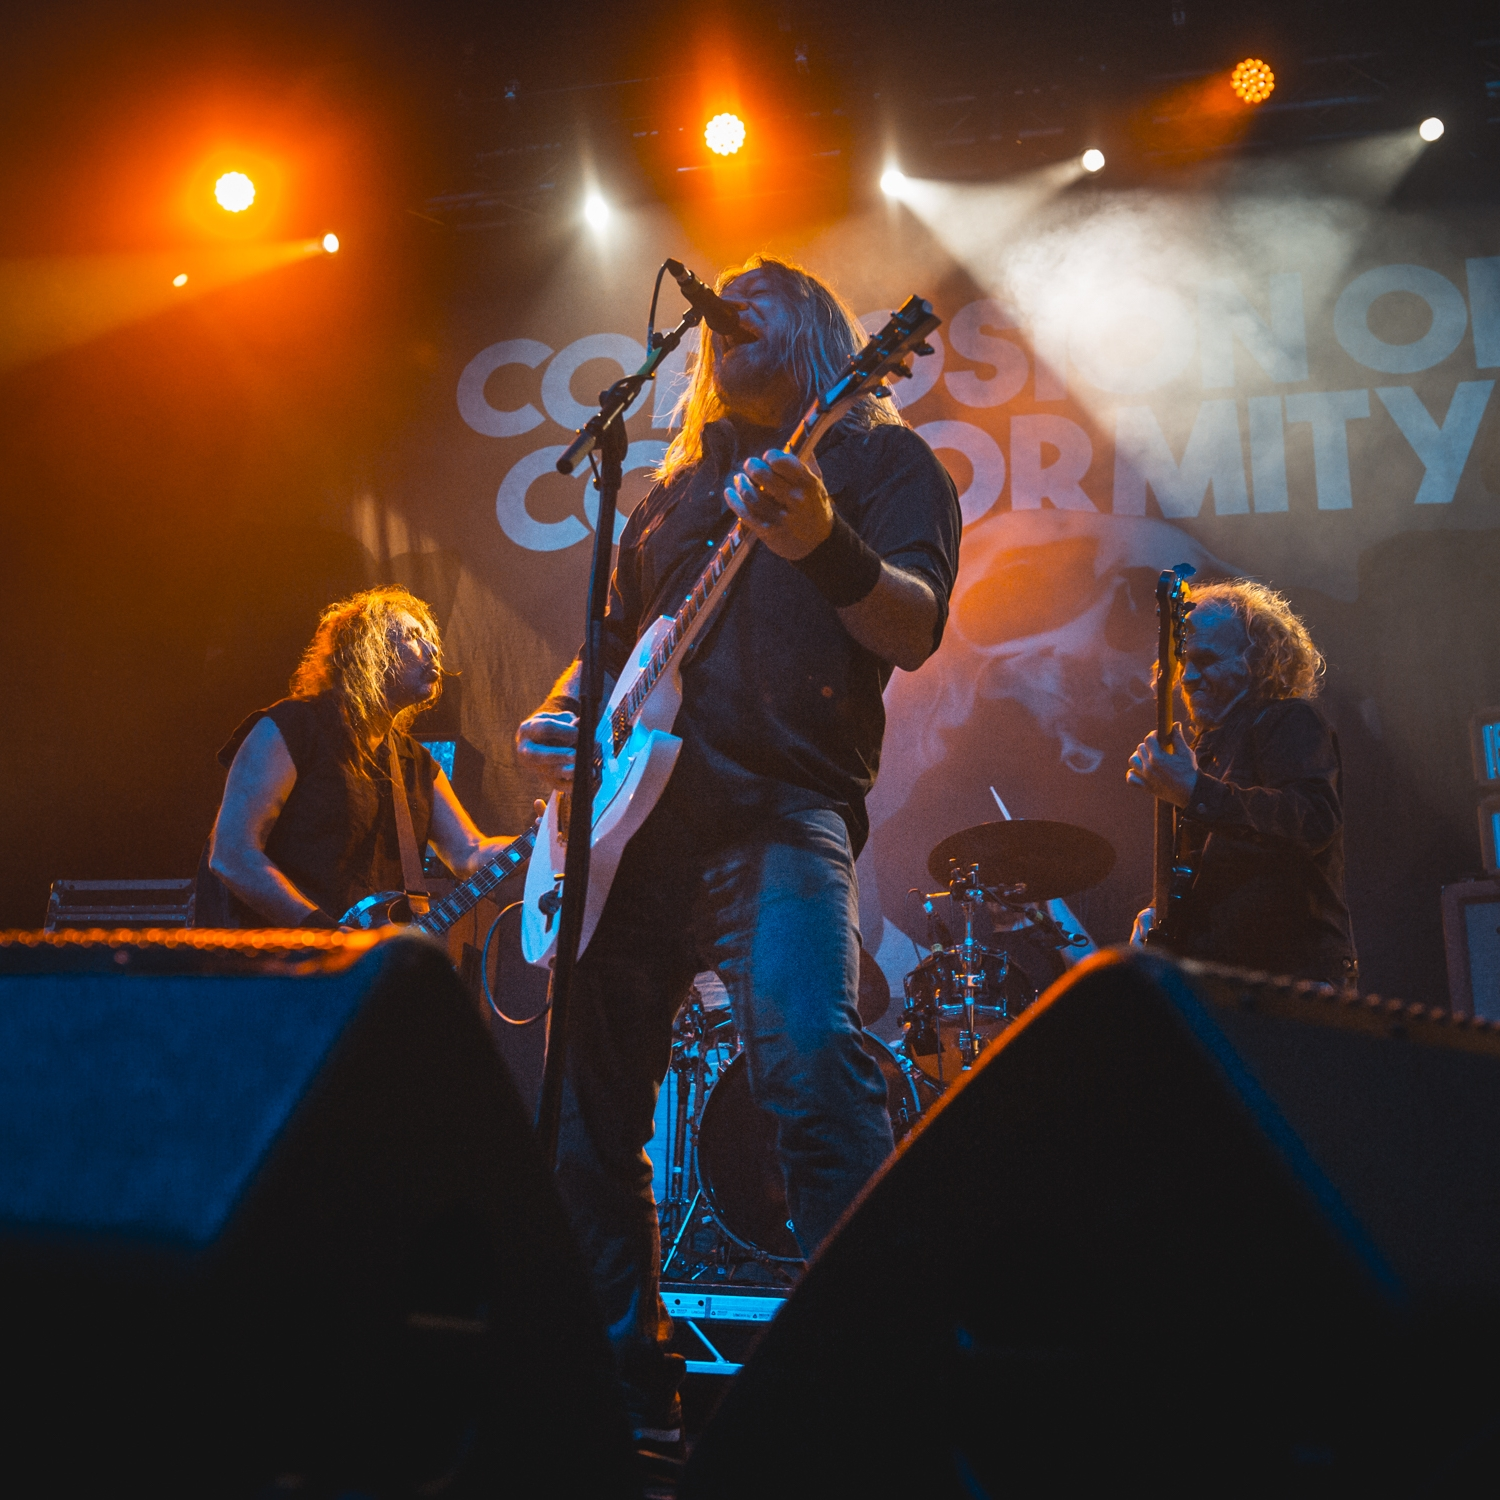 Corrosion_Of_Conformity_O2_Ritz_Manchester_October_30th_2018_©Samantha_Guess-2.jpg